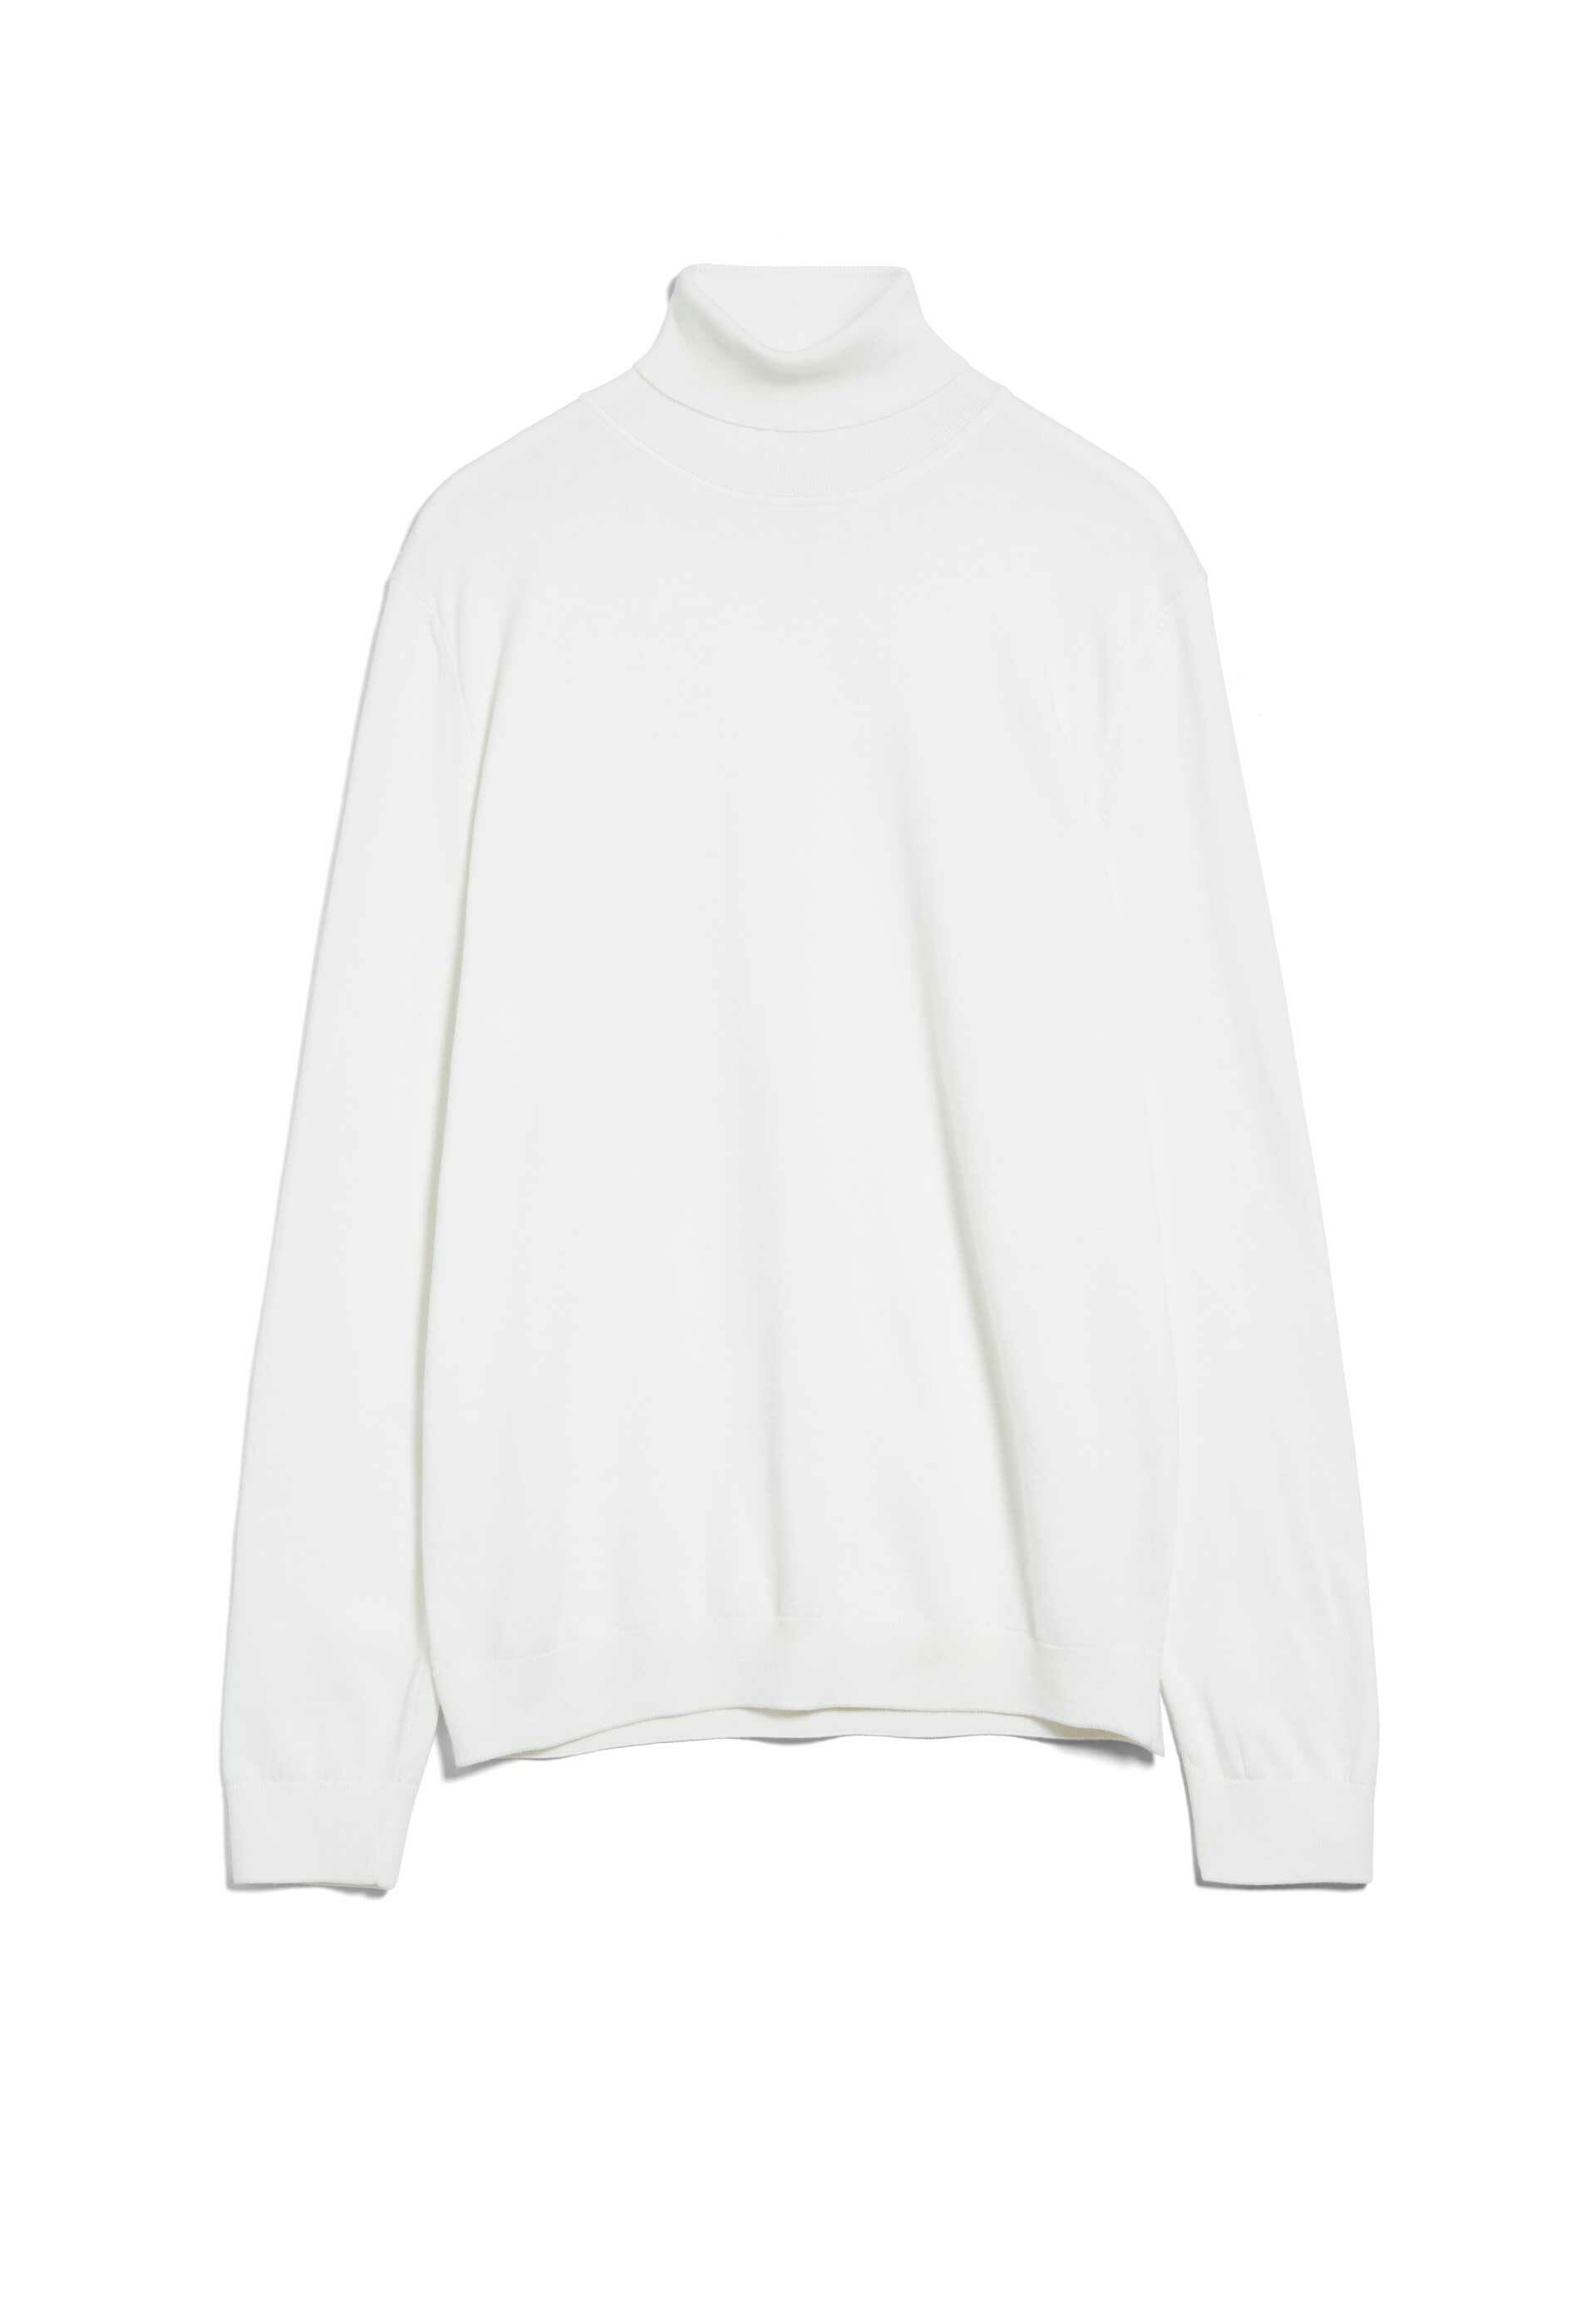 GLAAN Sweater made of Organic Cotton